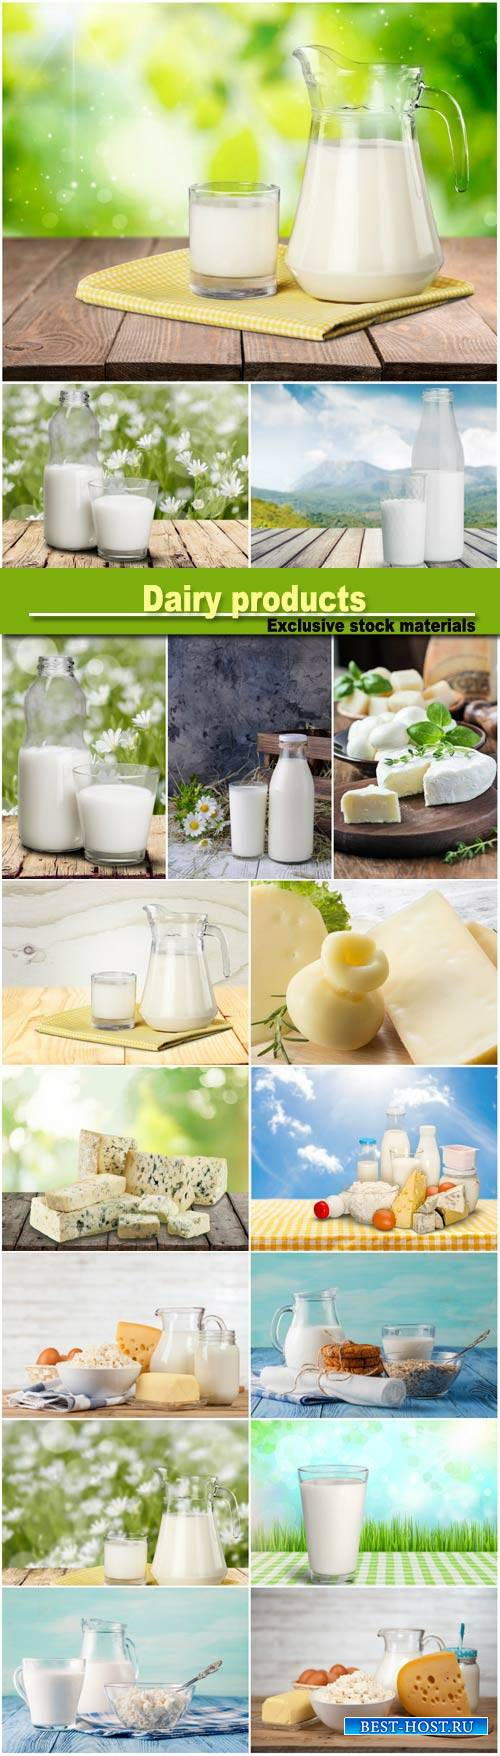 Dairy products, cheese and milk